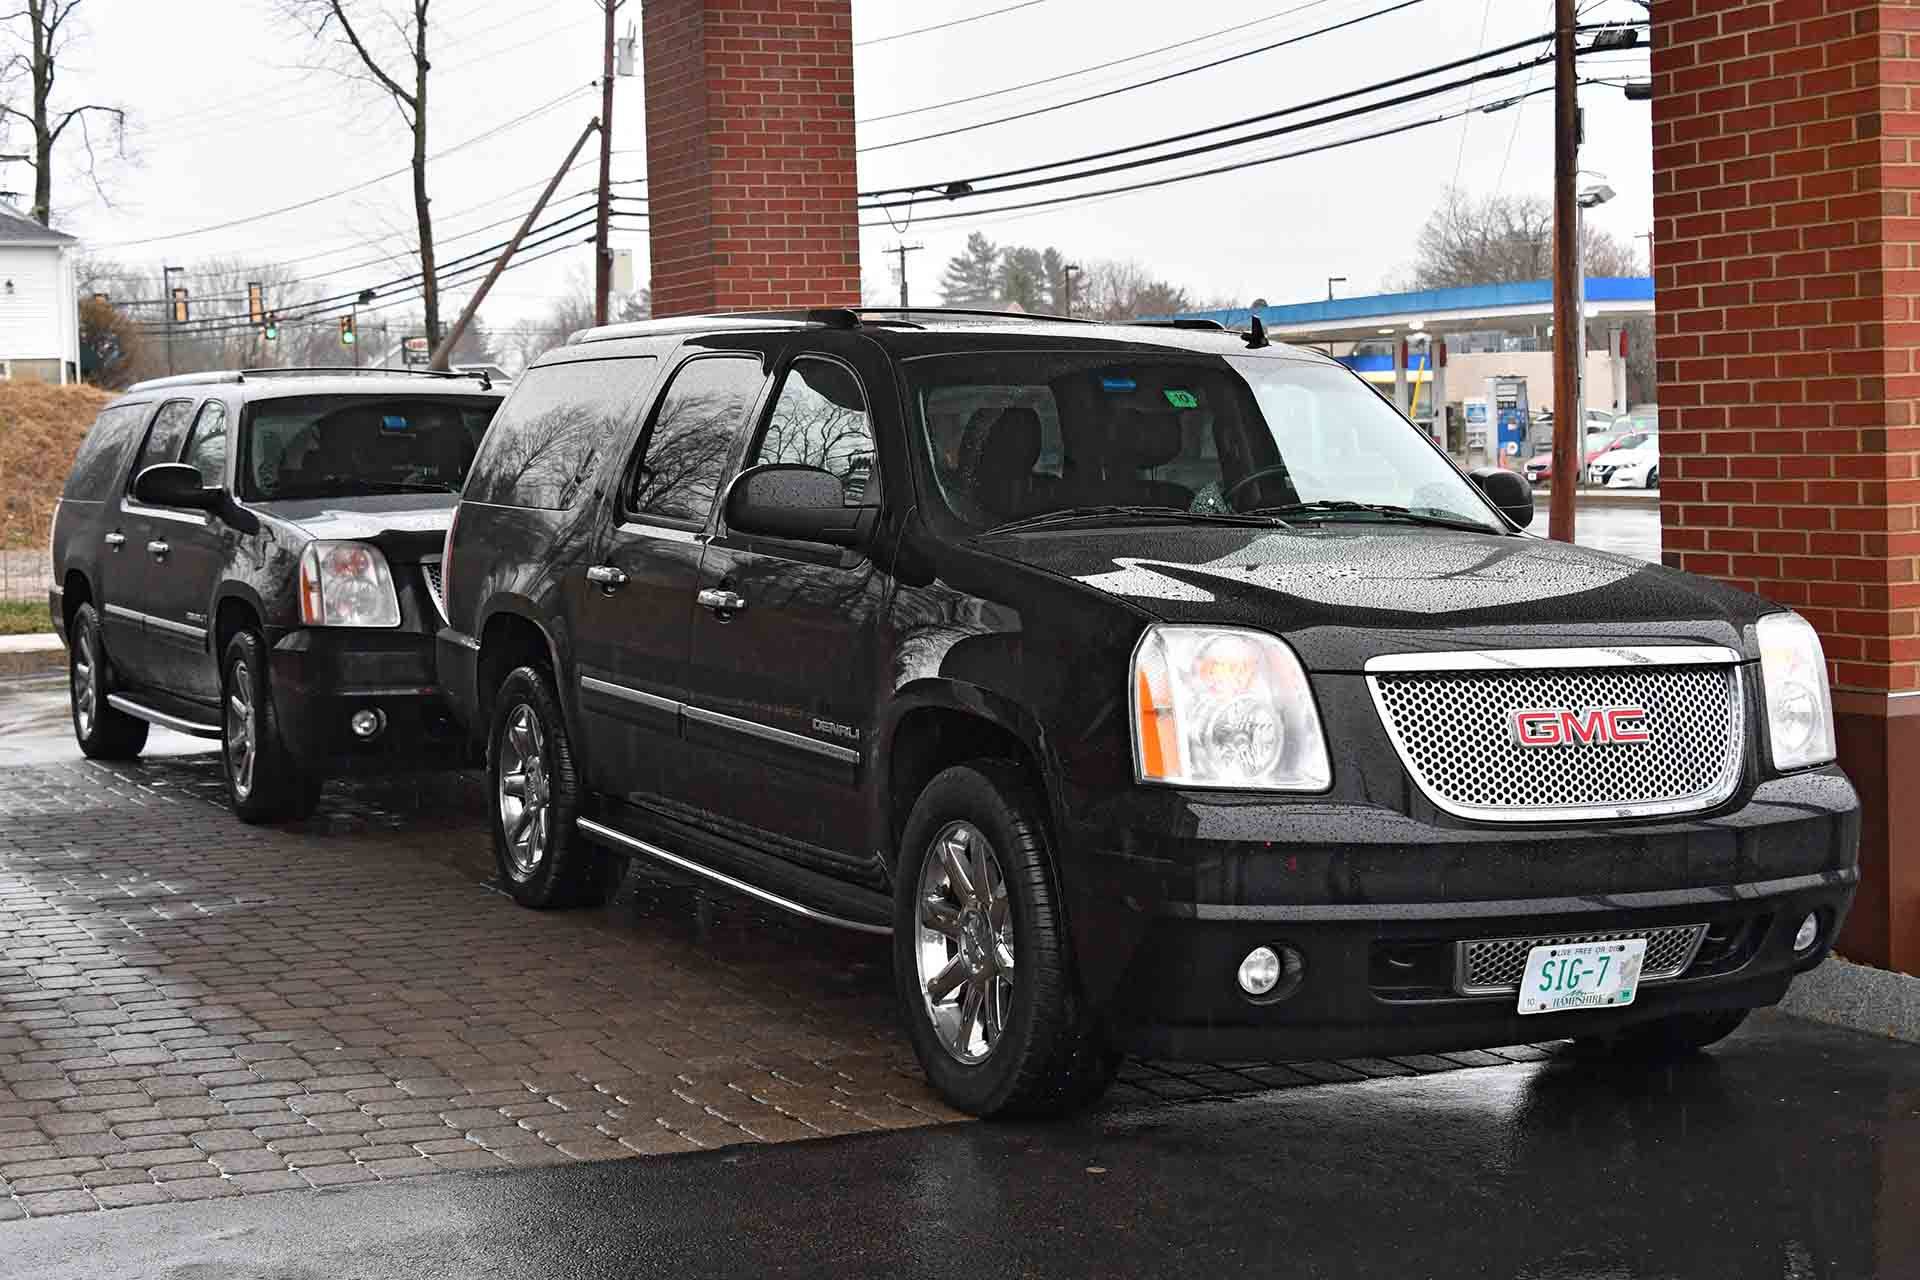 SIG Sauer Academy uses GMC Denali SUVs with custom SIG license plates.